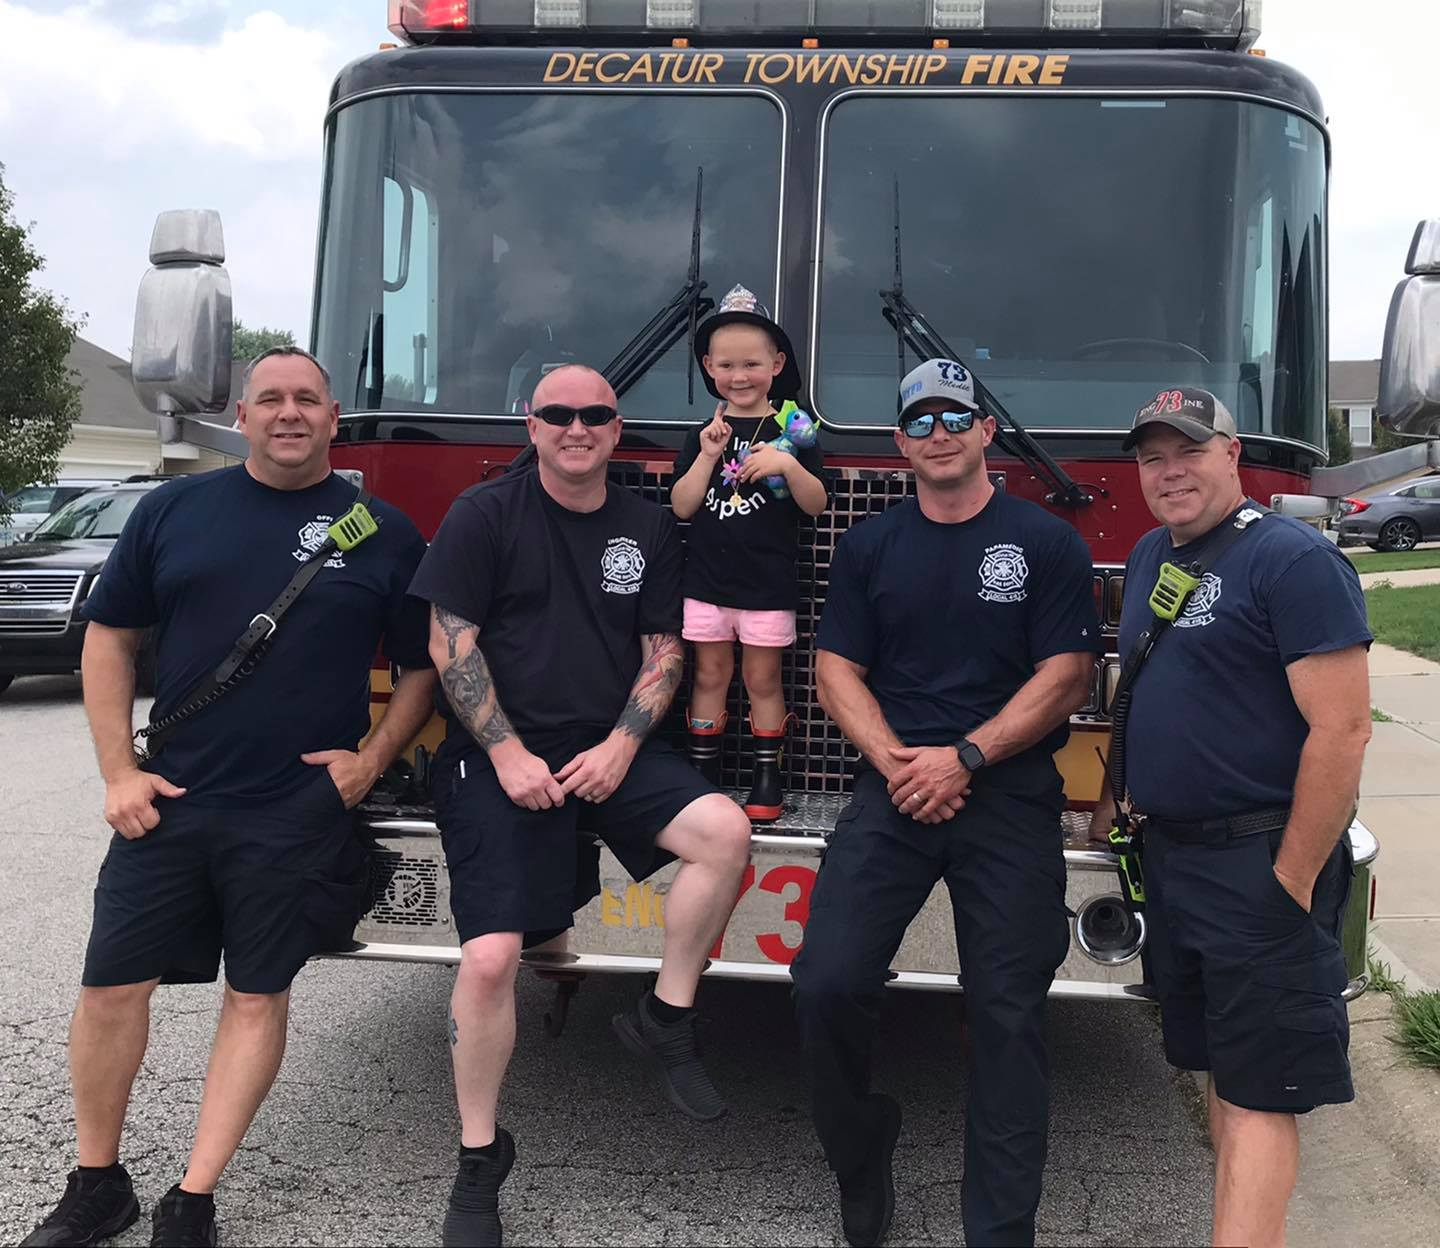 Decatur Township firefighters